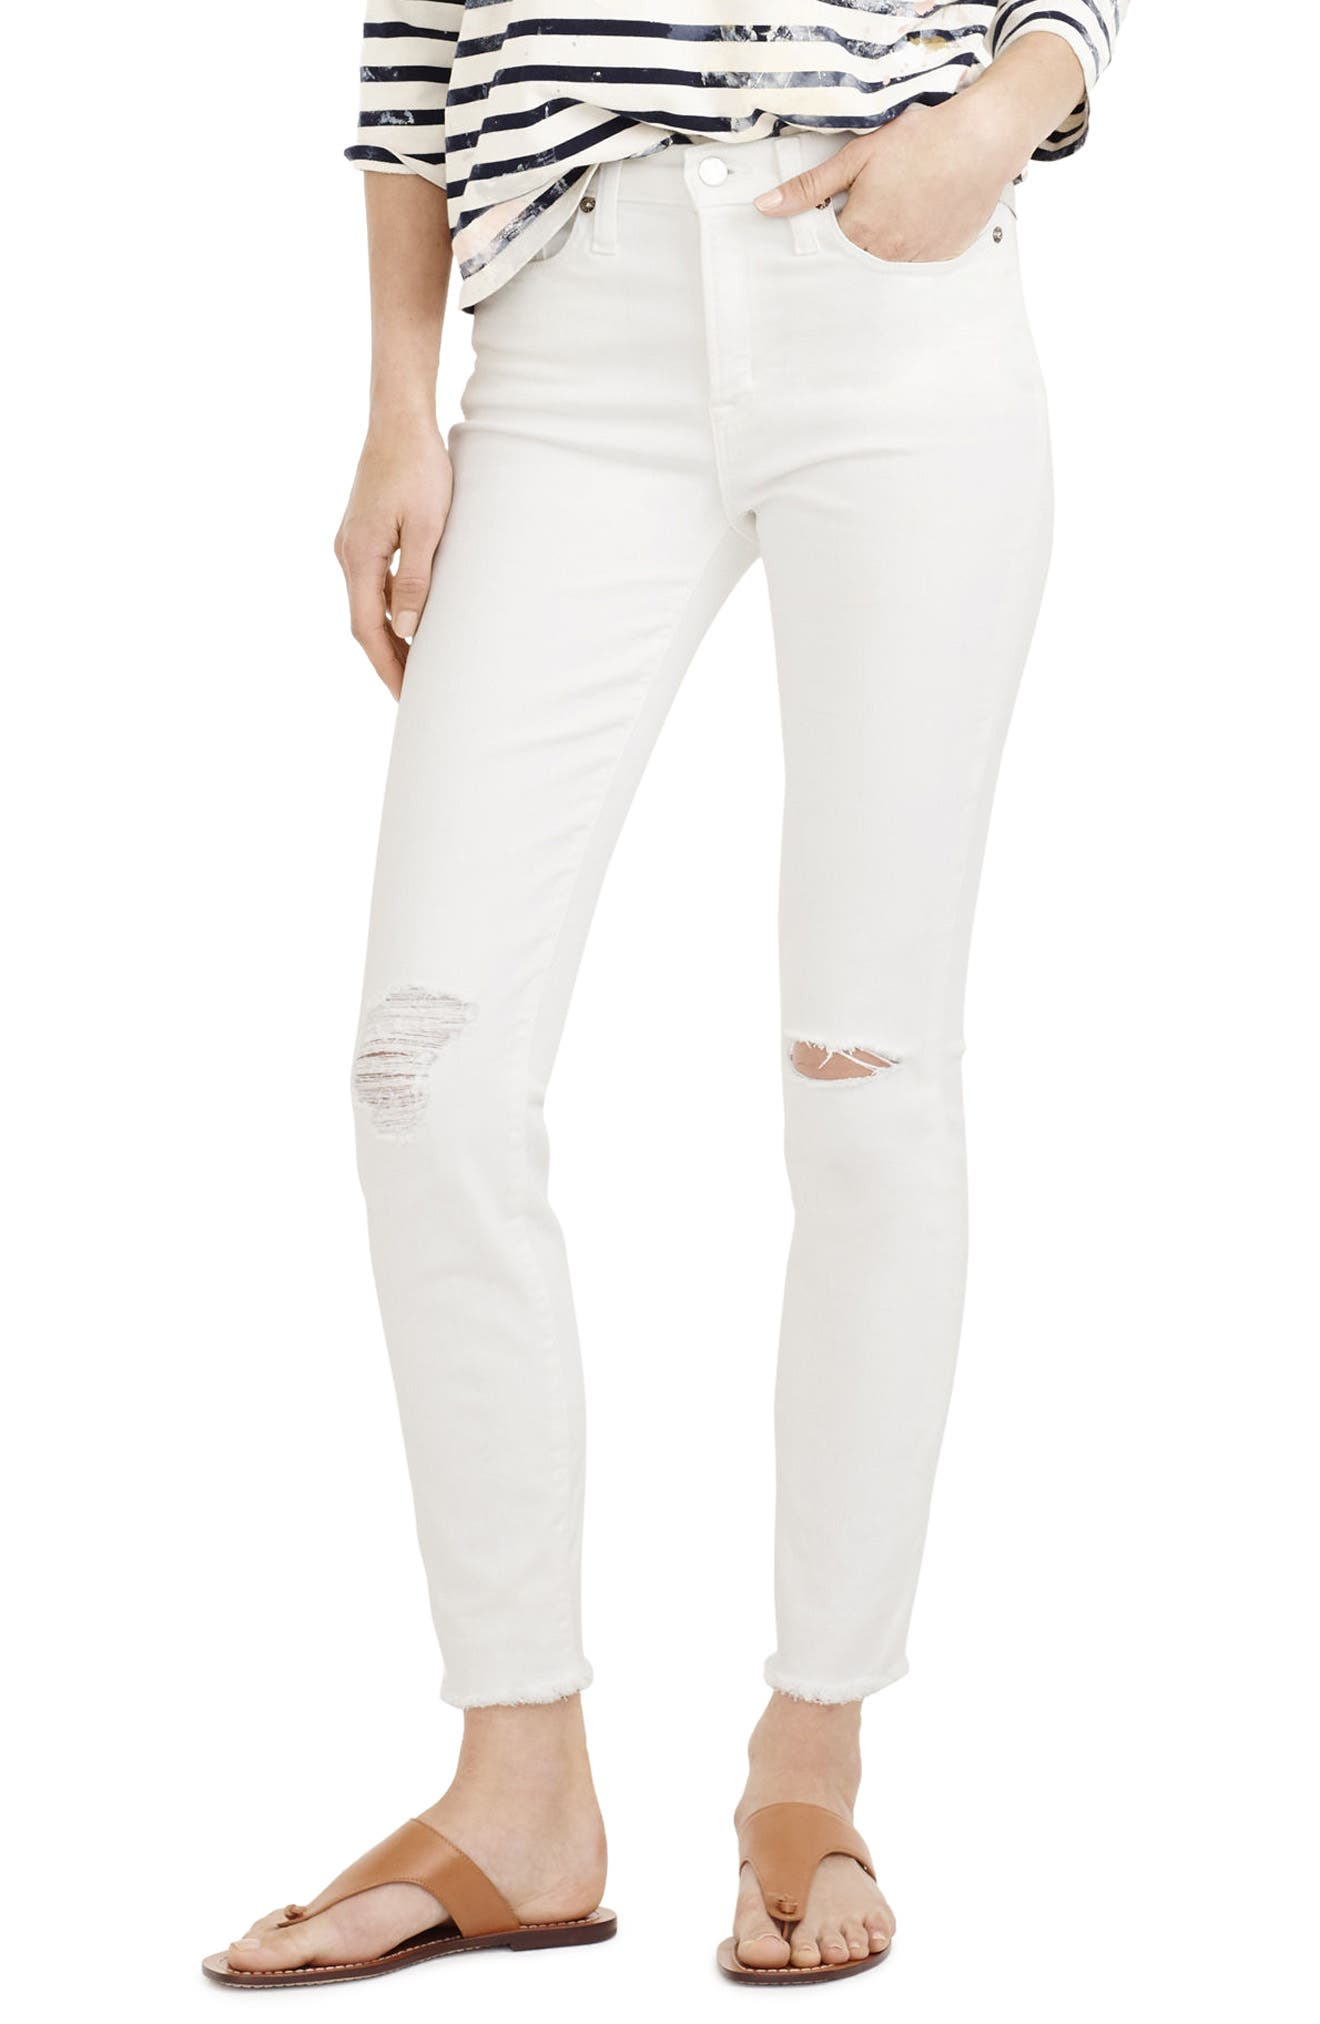 J.Crew Lookout High Waist Crop Jeans (Destroyed White) (Regular & Petite)